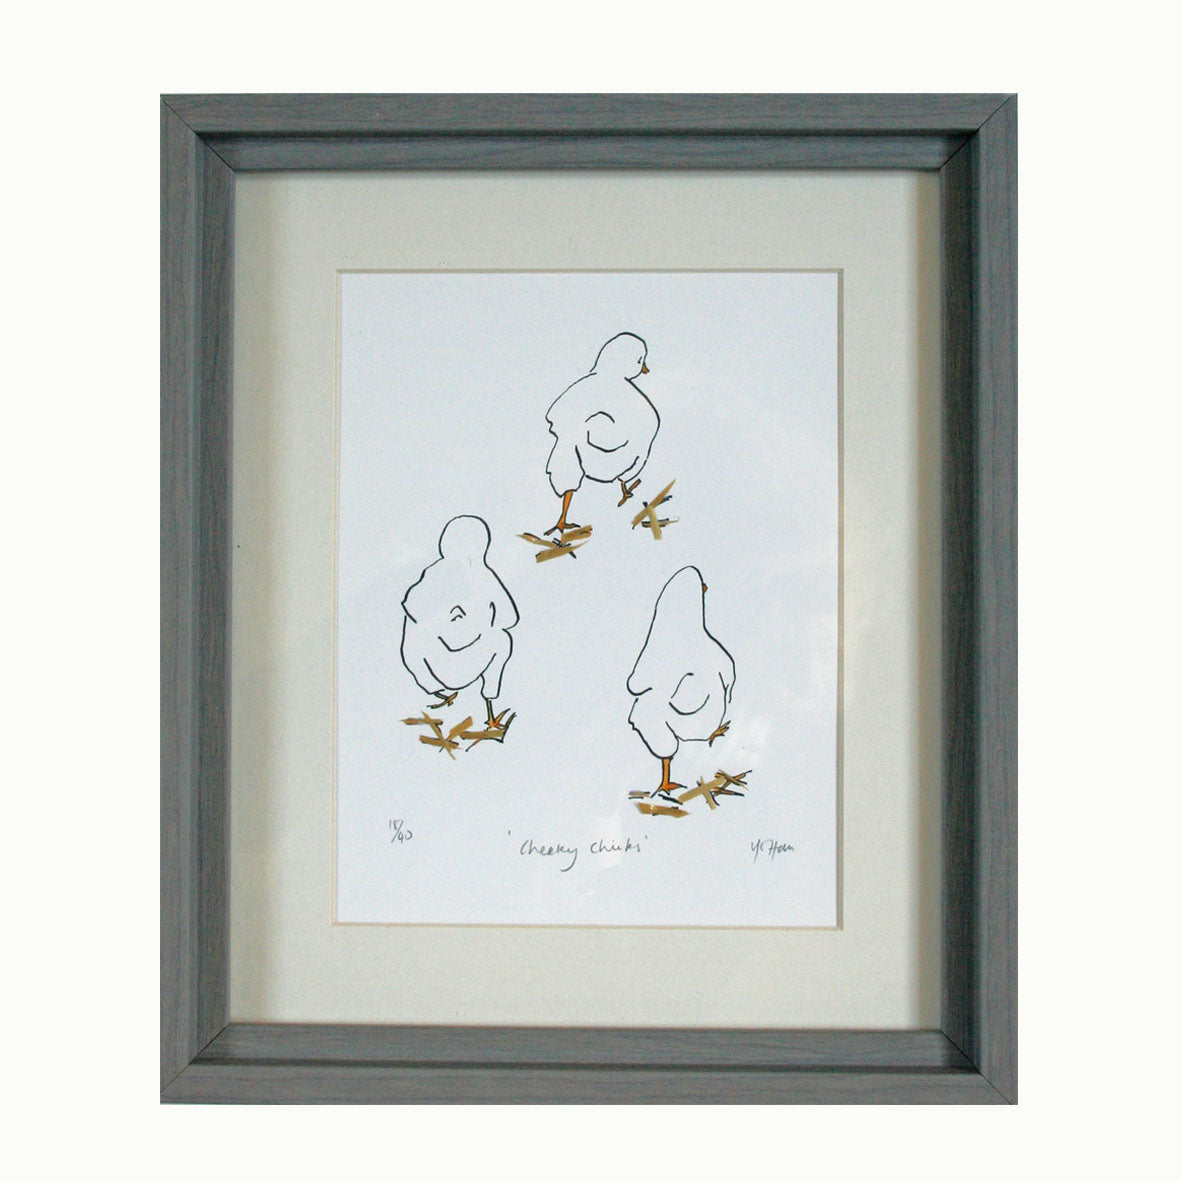 Cheeky Chicks Print with straw